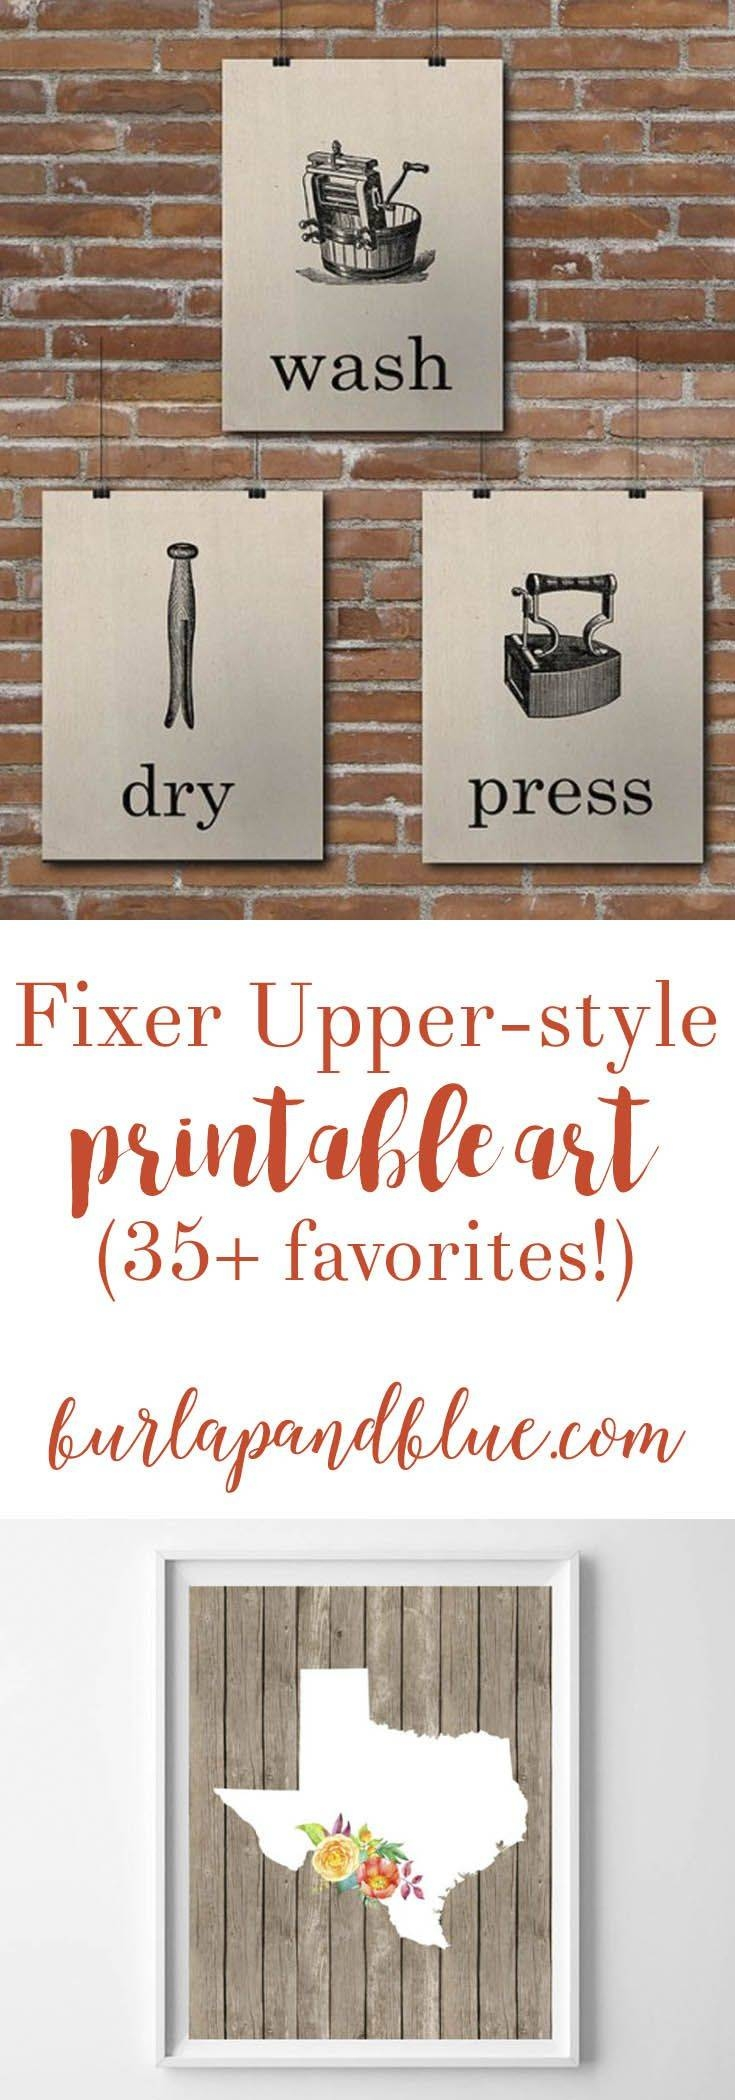 Best 25+ Laundry Room Printables Ideas On Pinterest | Laundry Art Within Newest Laundry Room Wall Art (View 5 of 30)